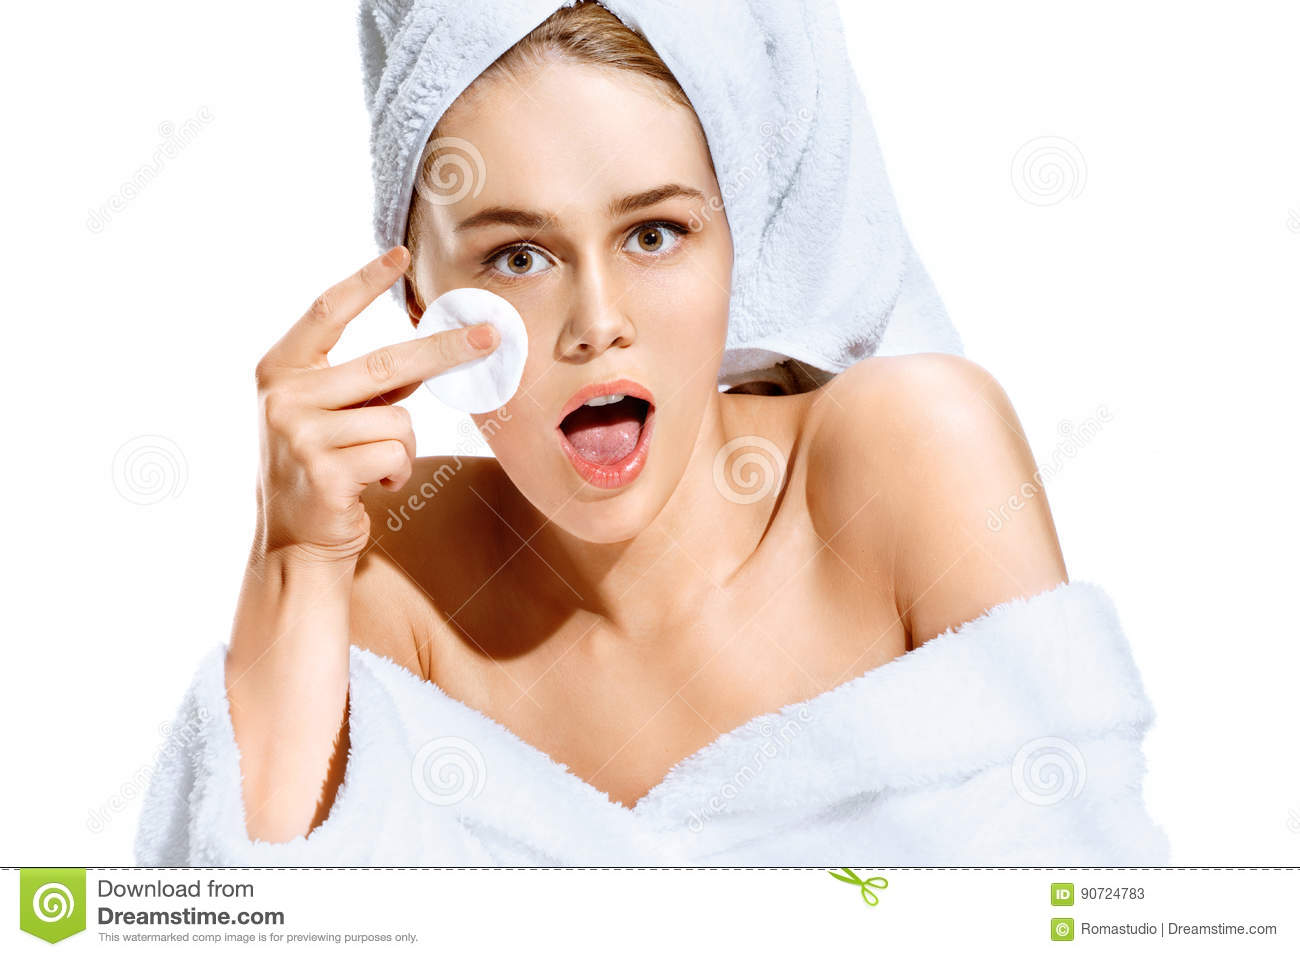 Woman after bath in white bathrobe and towel on her head cleaning her face with cotton pad